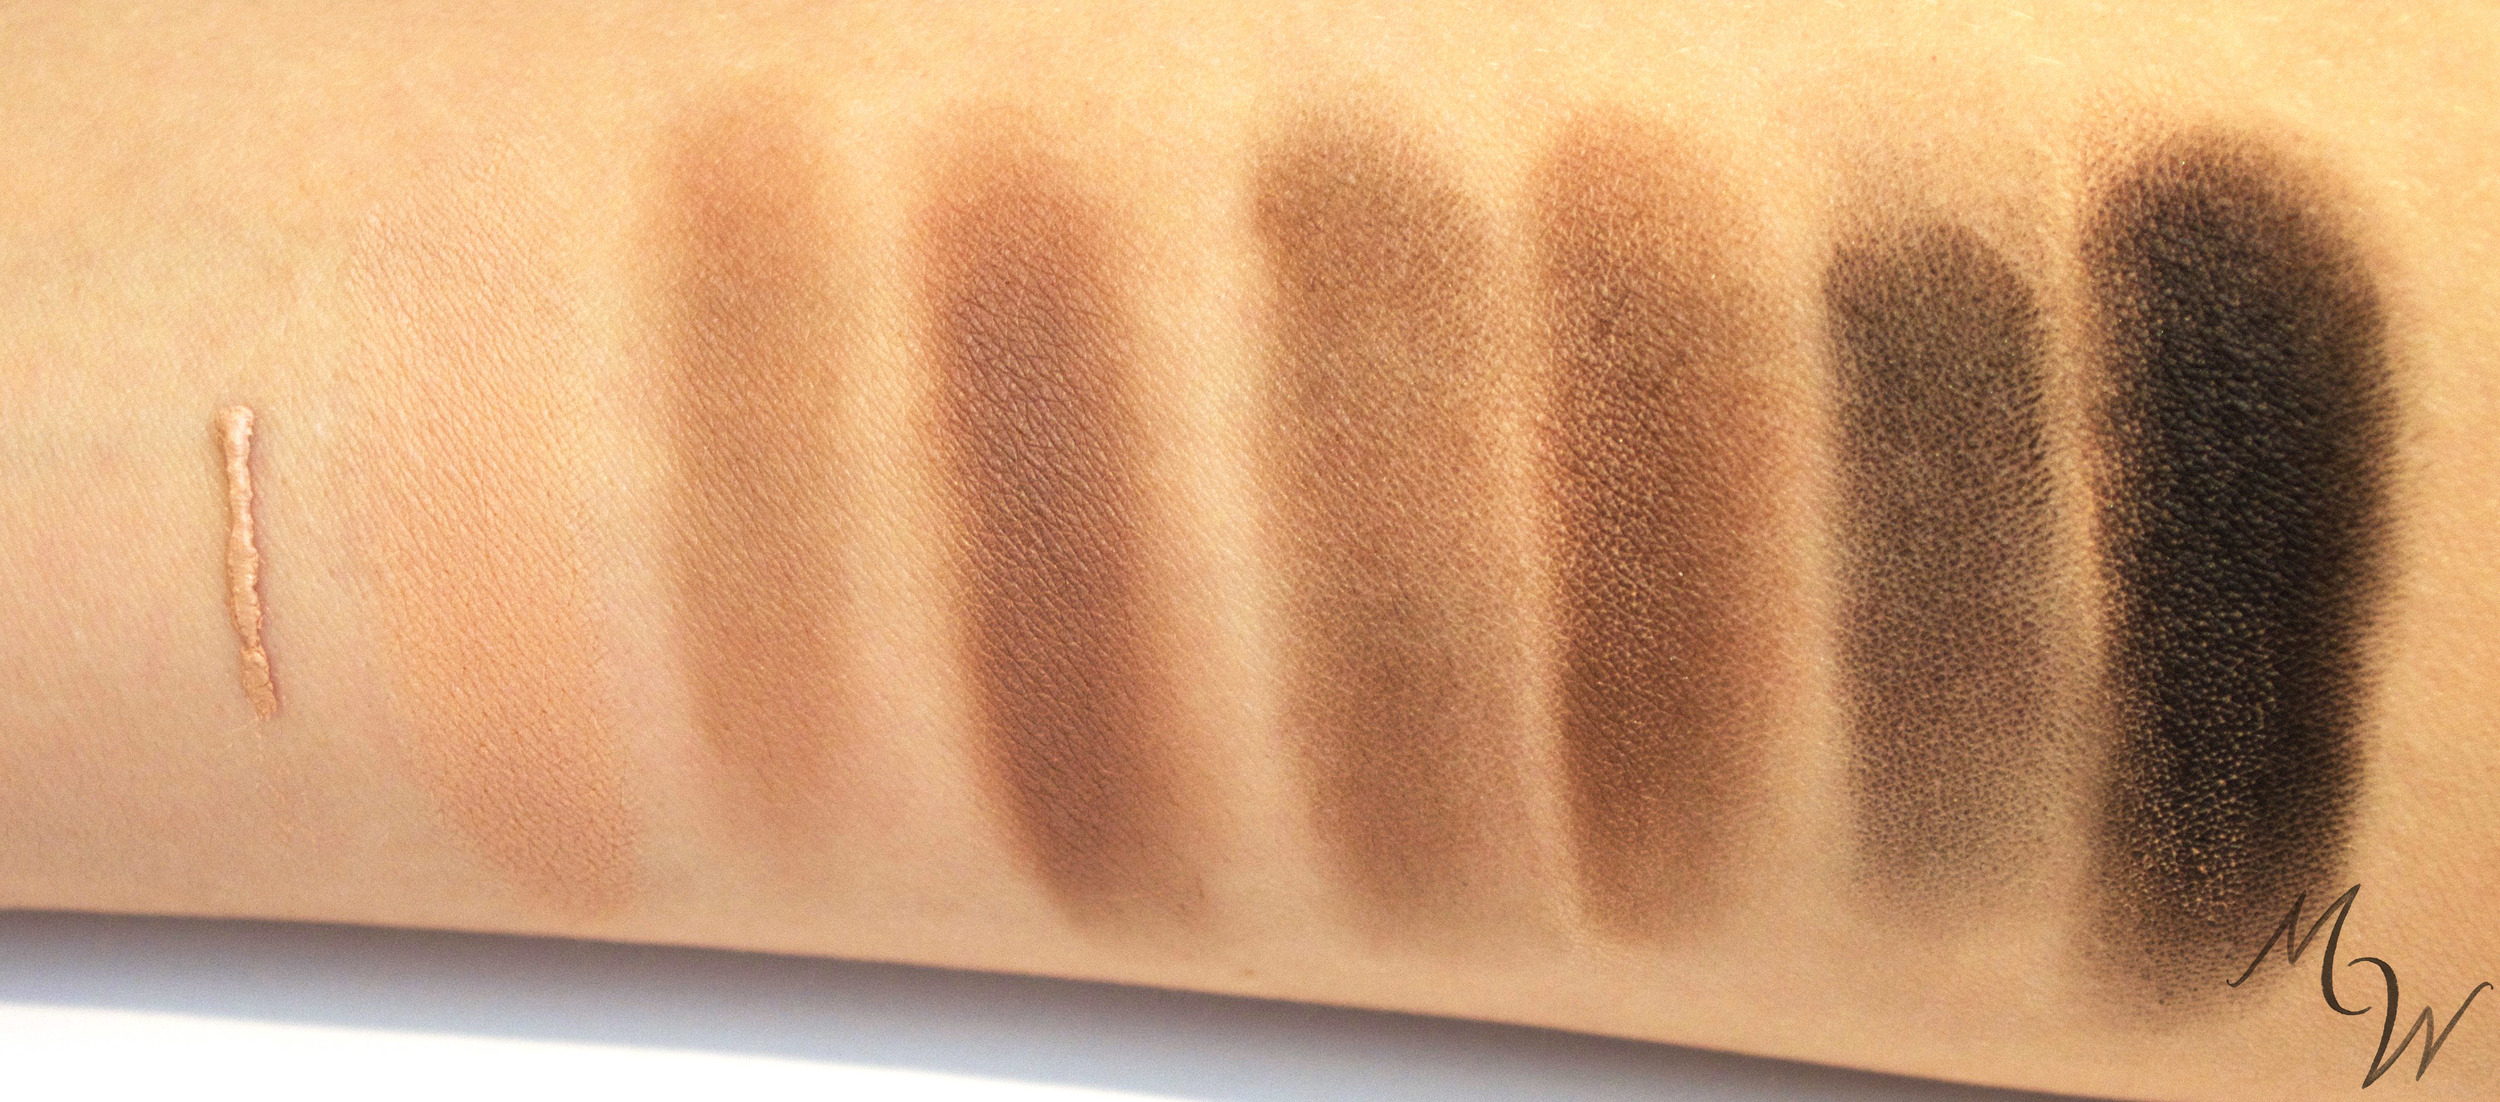 Brightening Eyeshadow Primer and Mineral Eyeshadows in Earth, Espresso, and Night alone and over Primer—no flash.